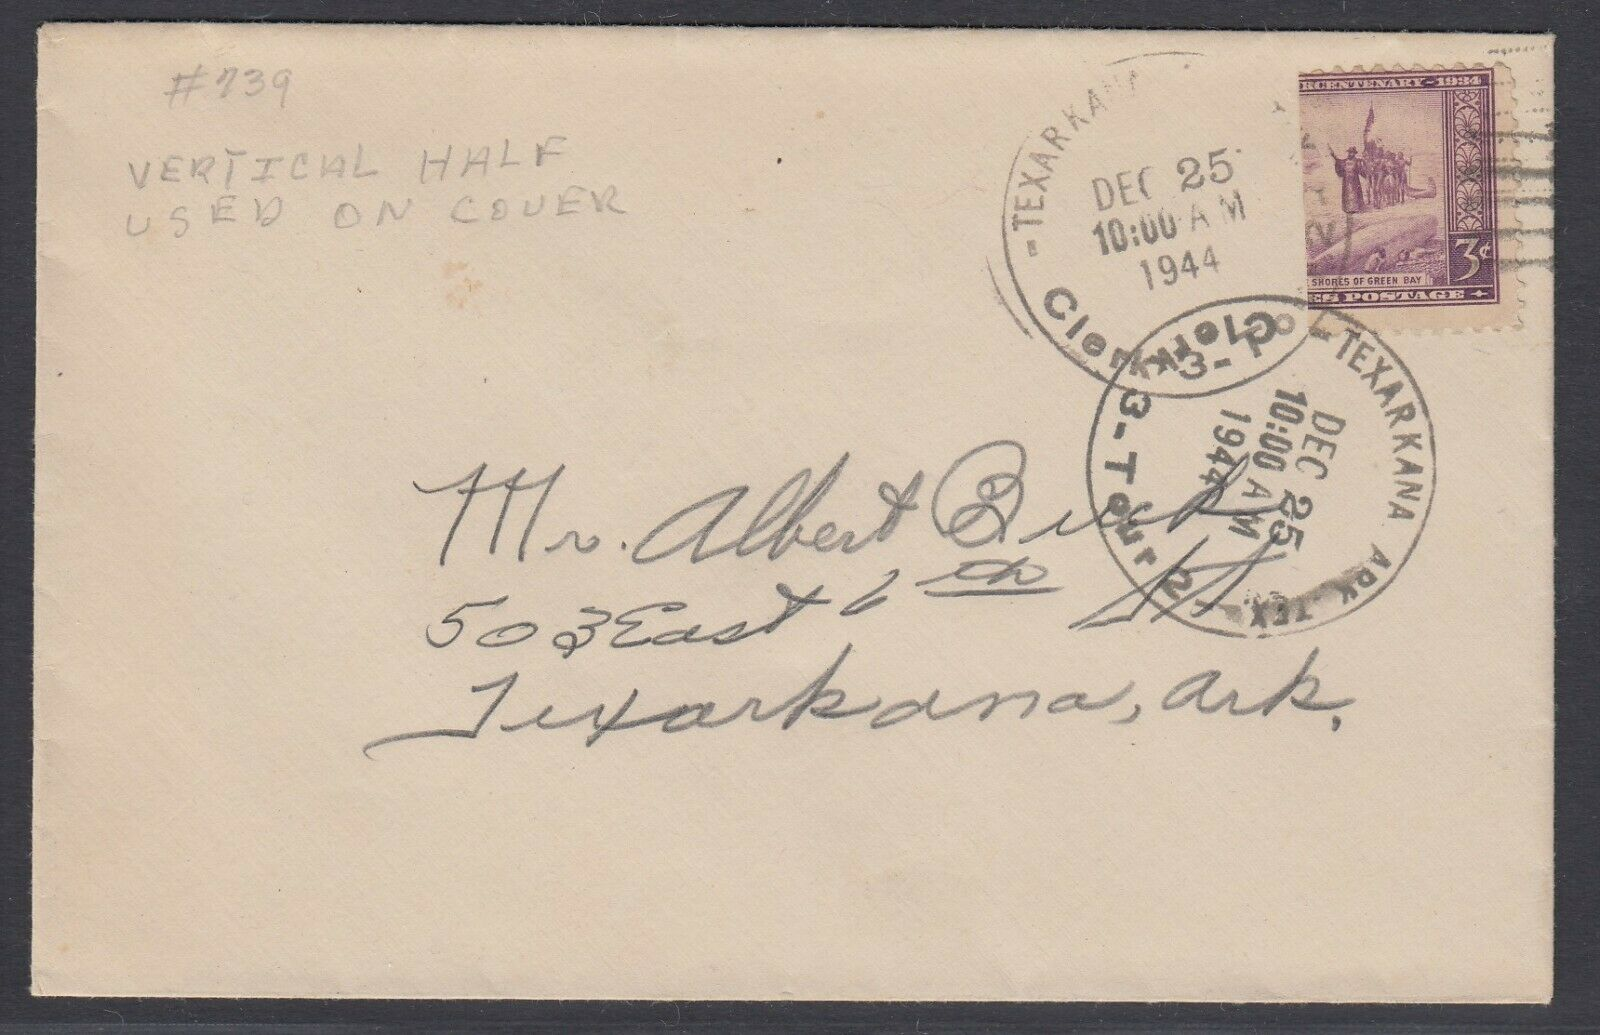 US Sc 739 - 1944 Vertical BISECT on cover from Texarkana Ark address locally